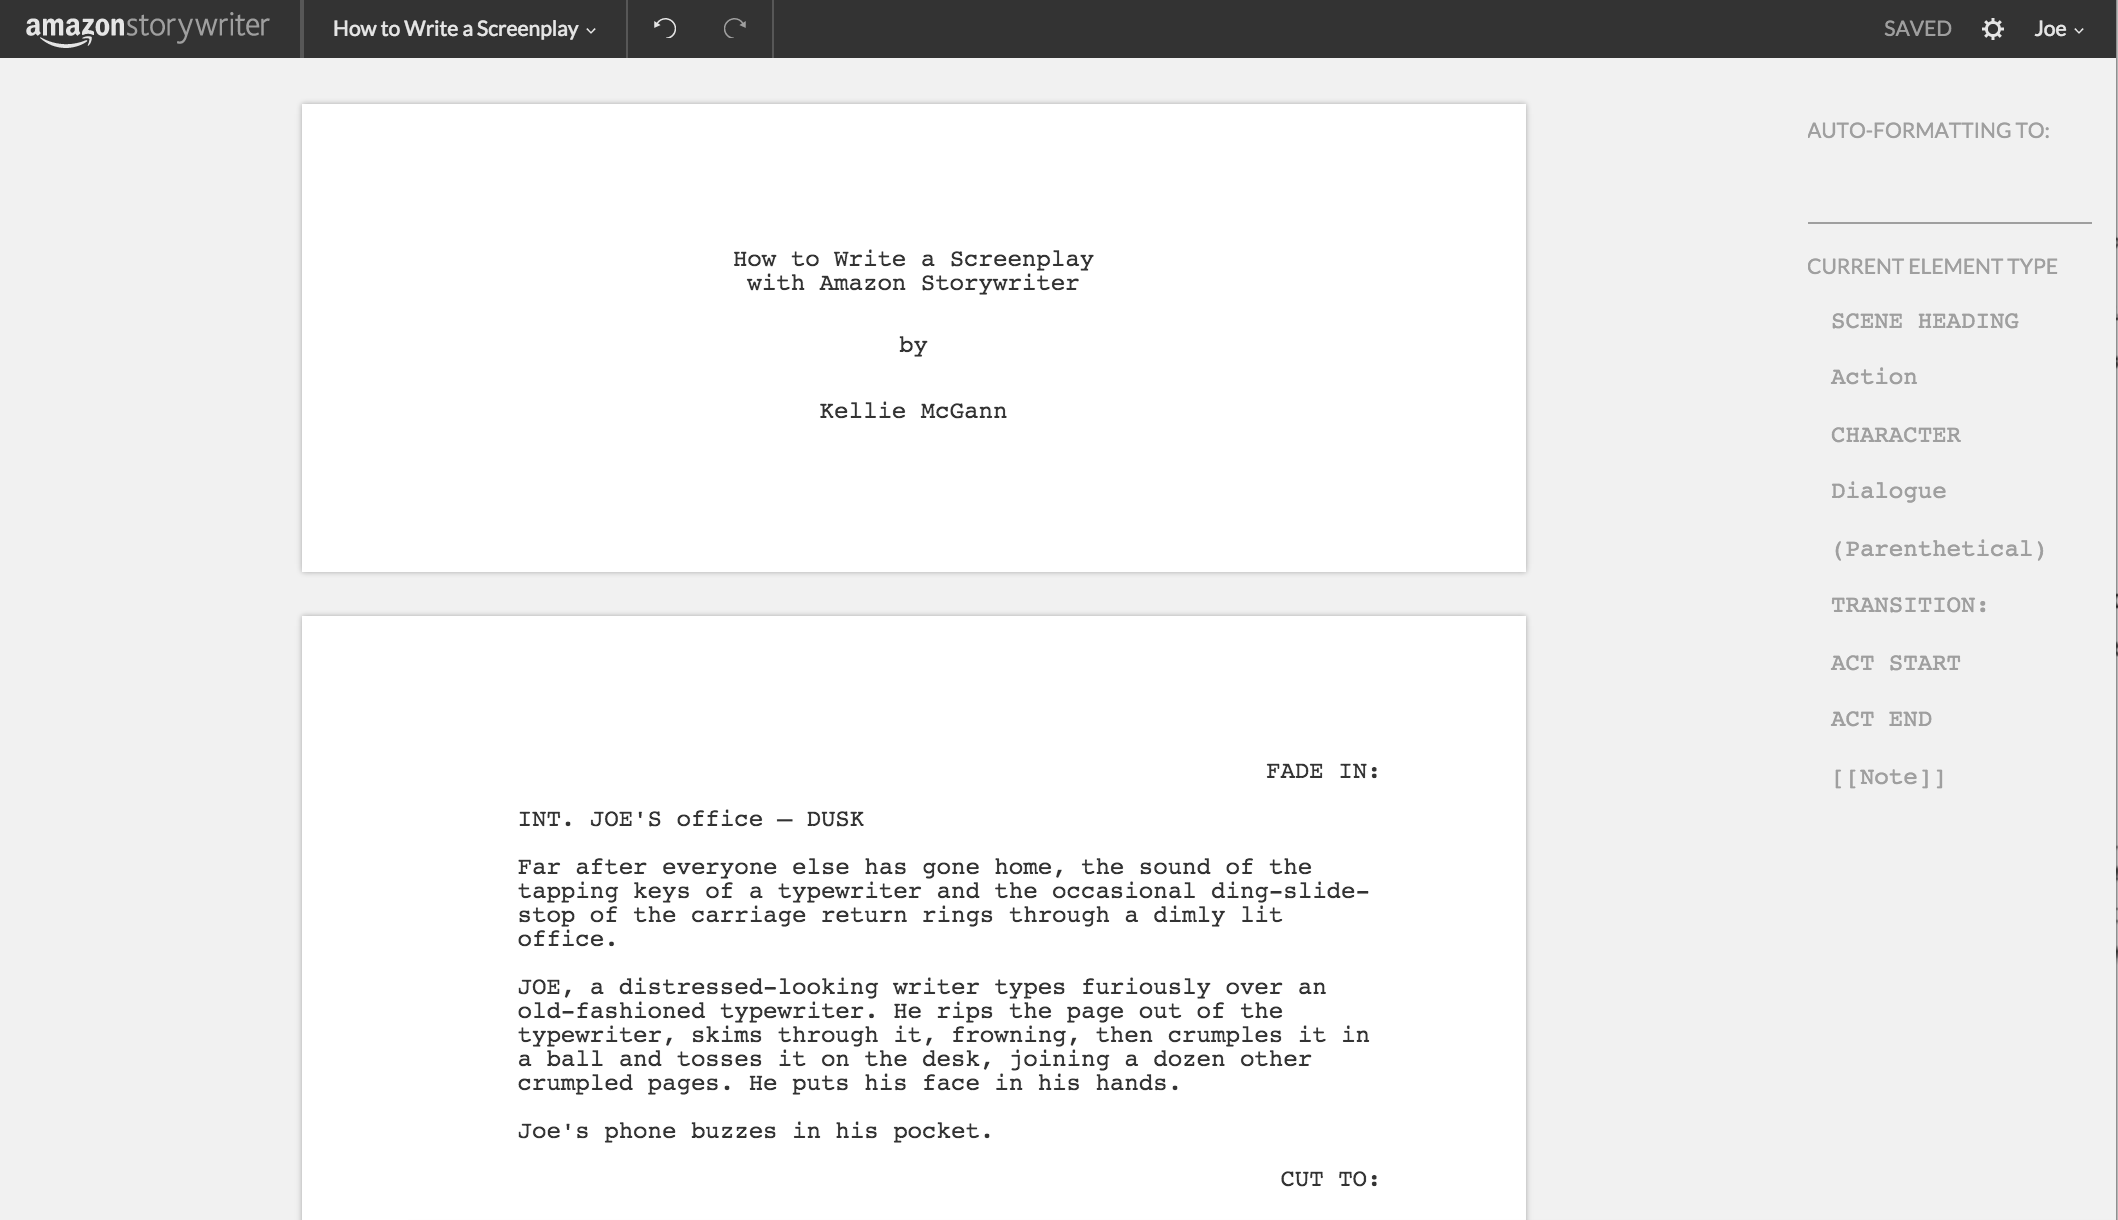 How To Write A Screenplay Using Amazon Storywriter With